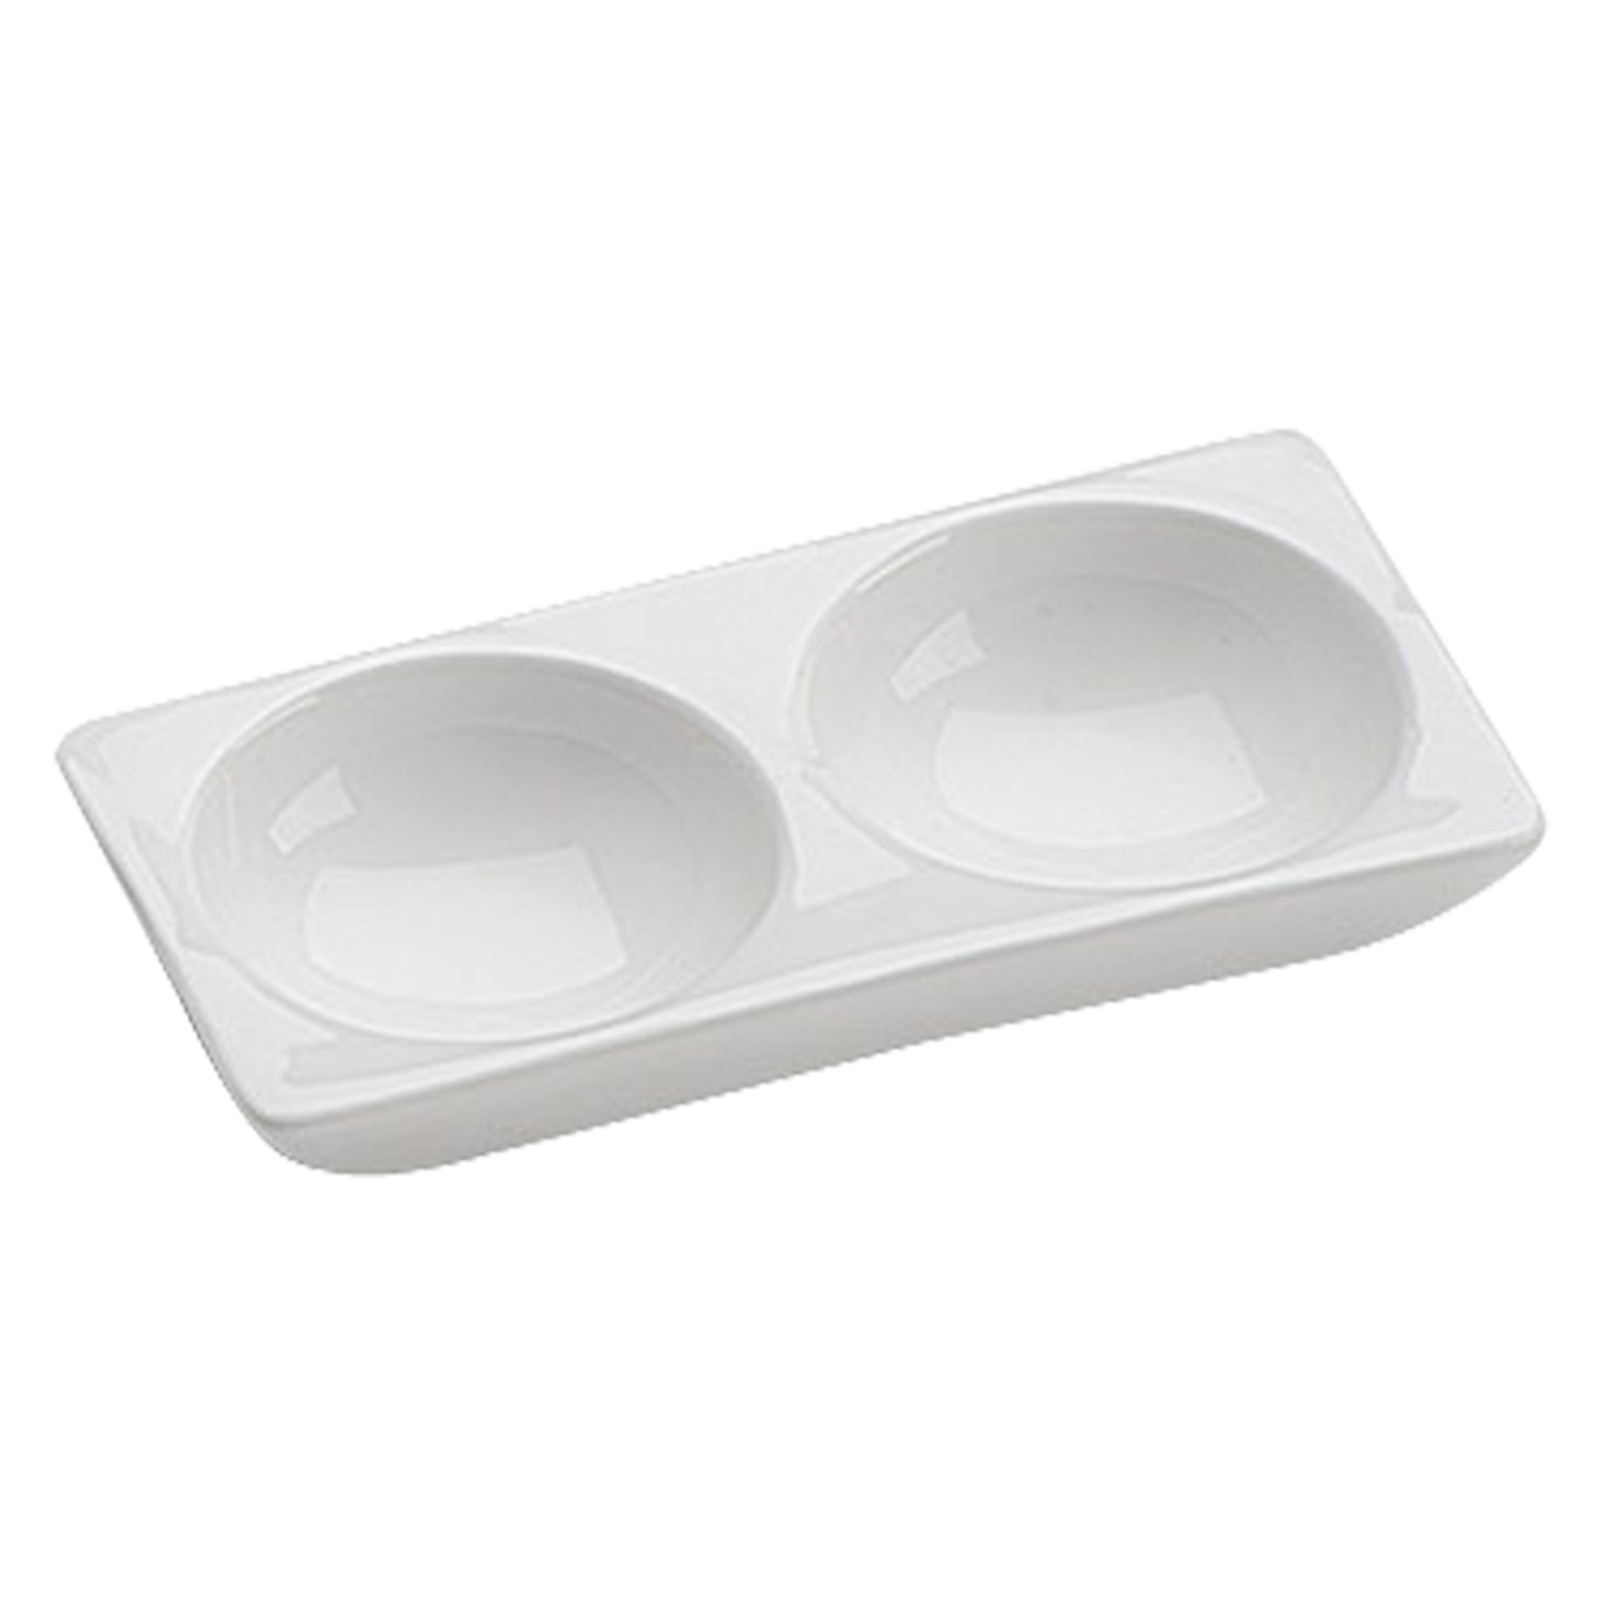 Set of 6, 2 Section Rectangular Dishes by BIA